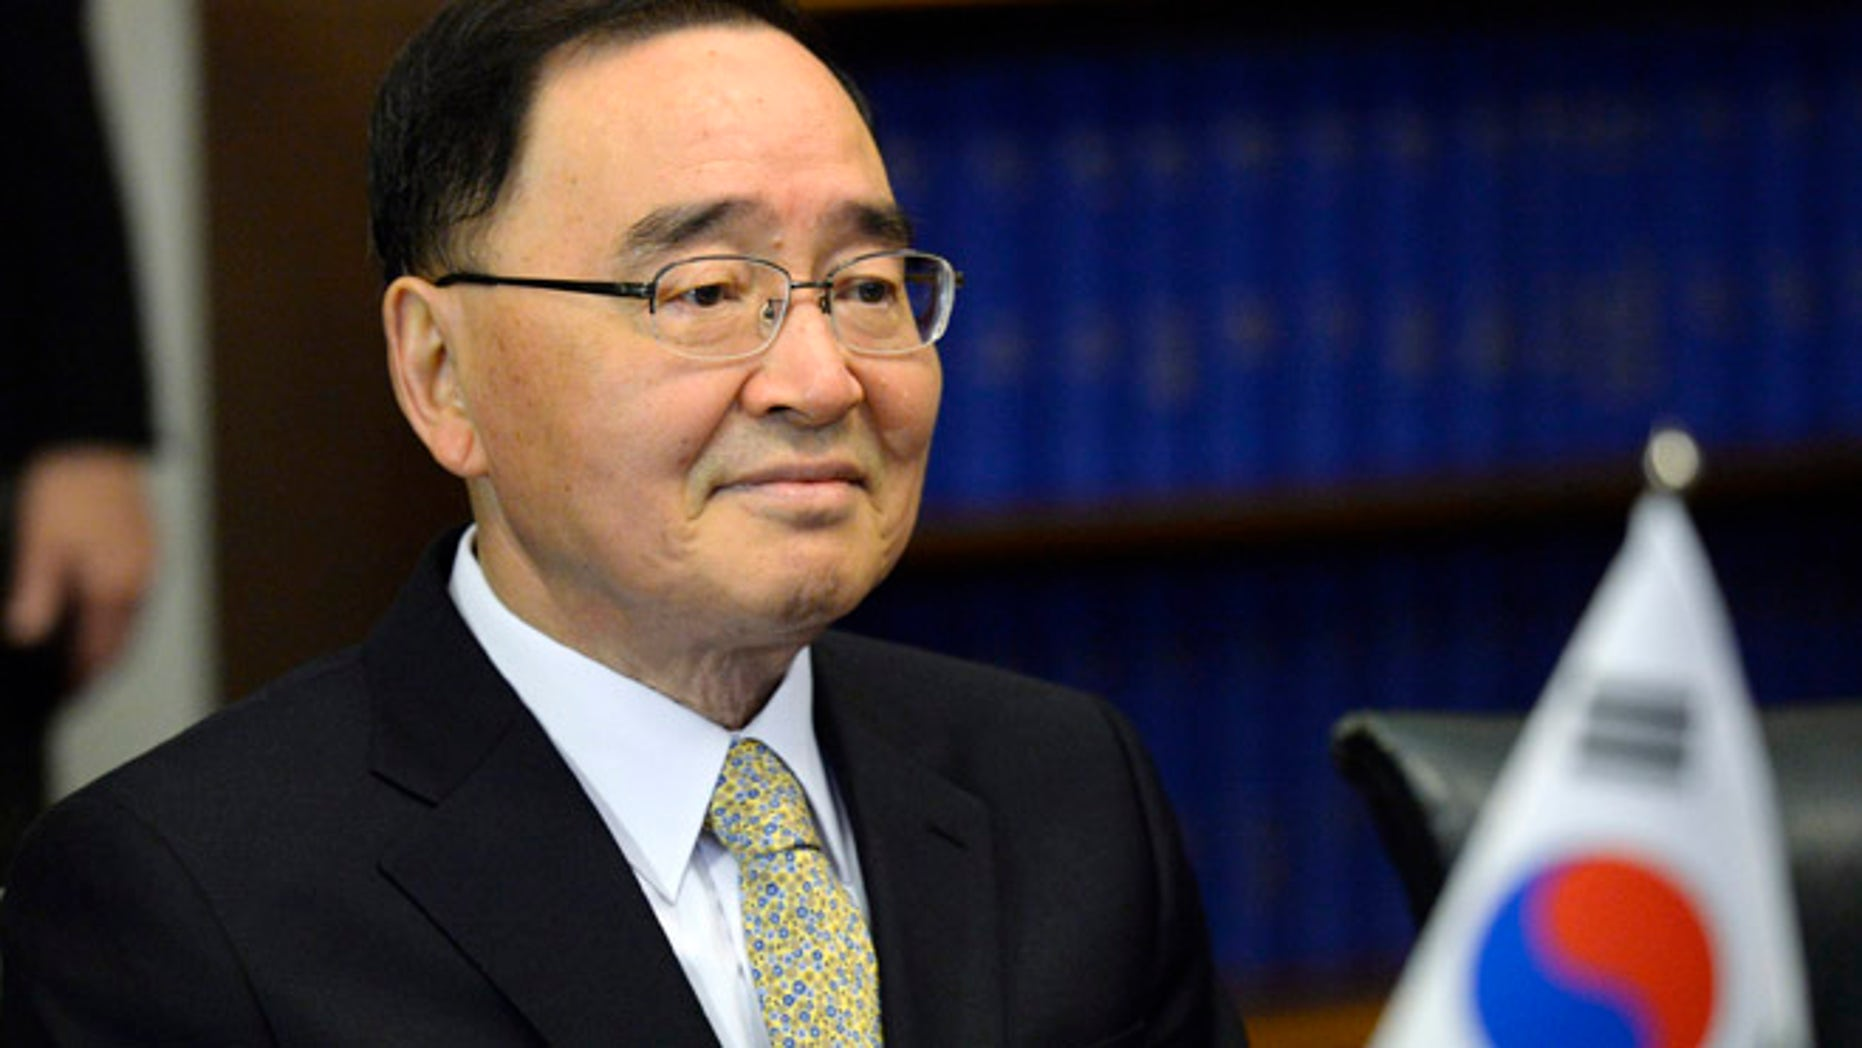 Oct. 24, 2013: South Korean Prime Minister Chung Hong-won attends a meeting at the Finnish Parliament in Helsinki.